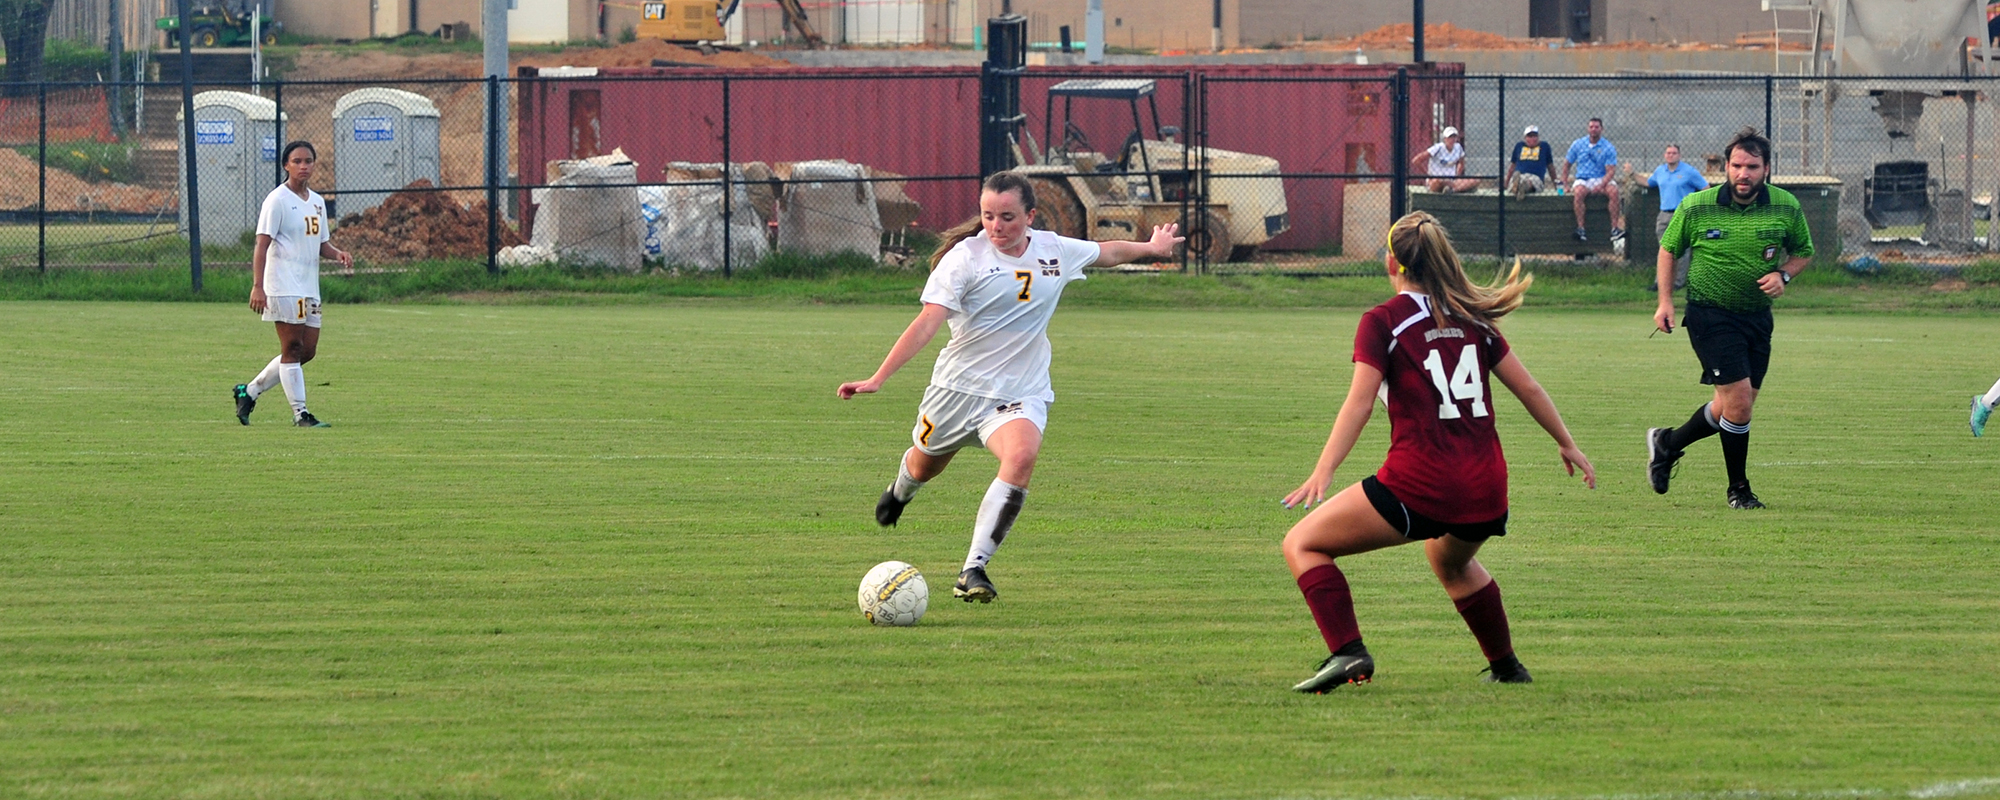 Lady Bulldogs drop opener